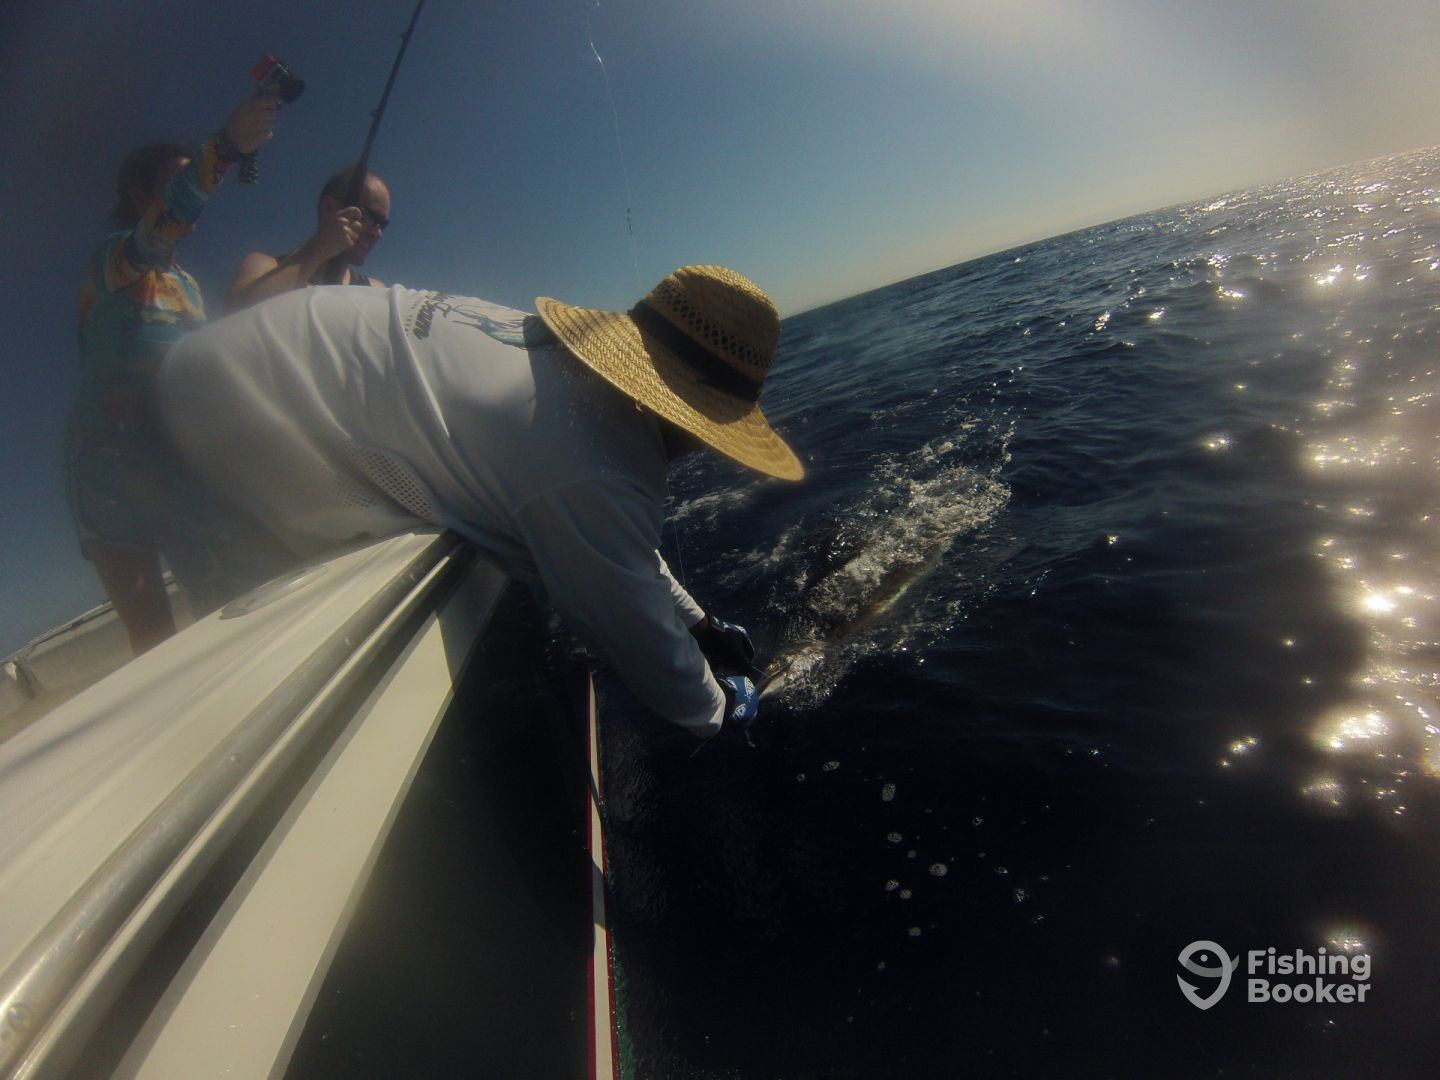 Carlos getting the sailfish close